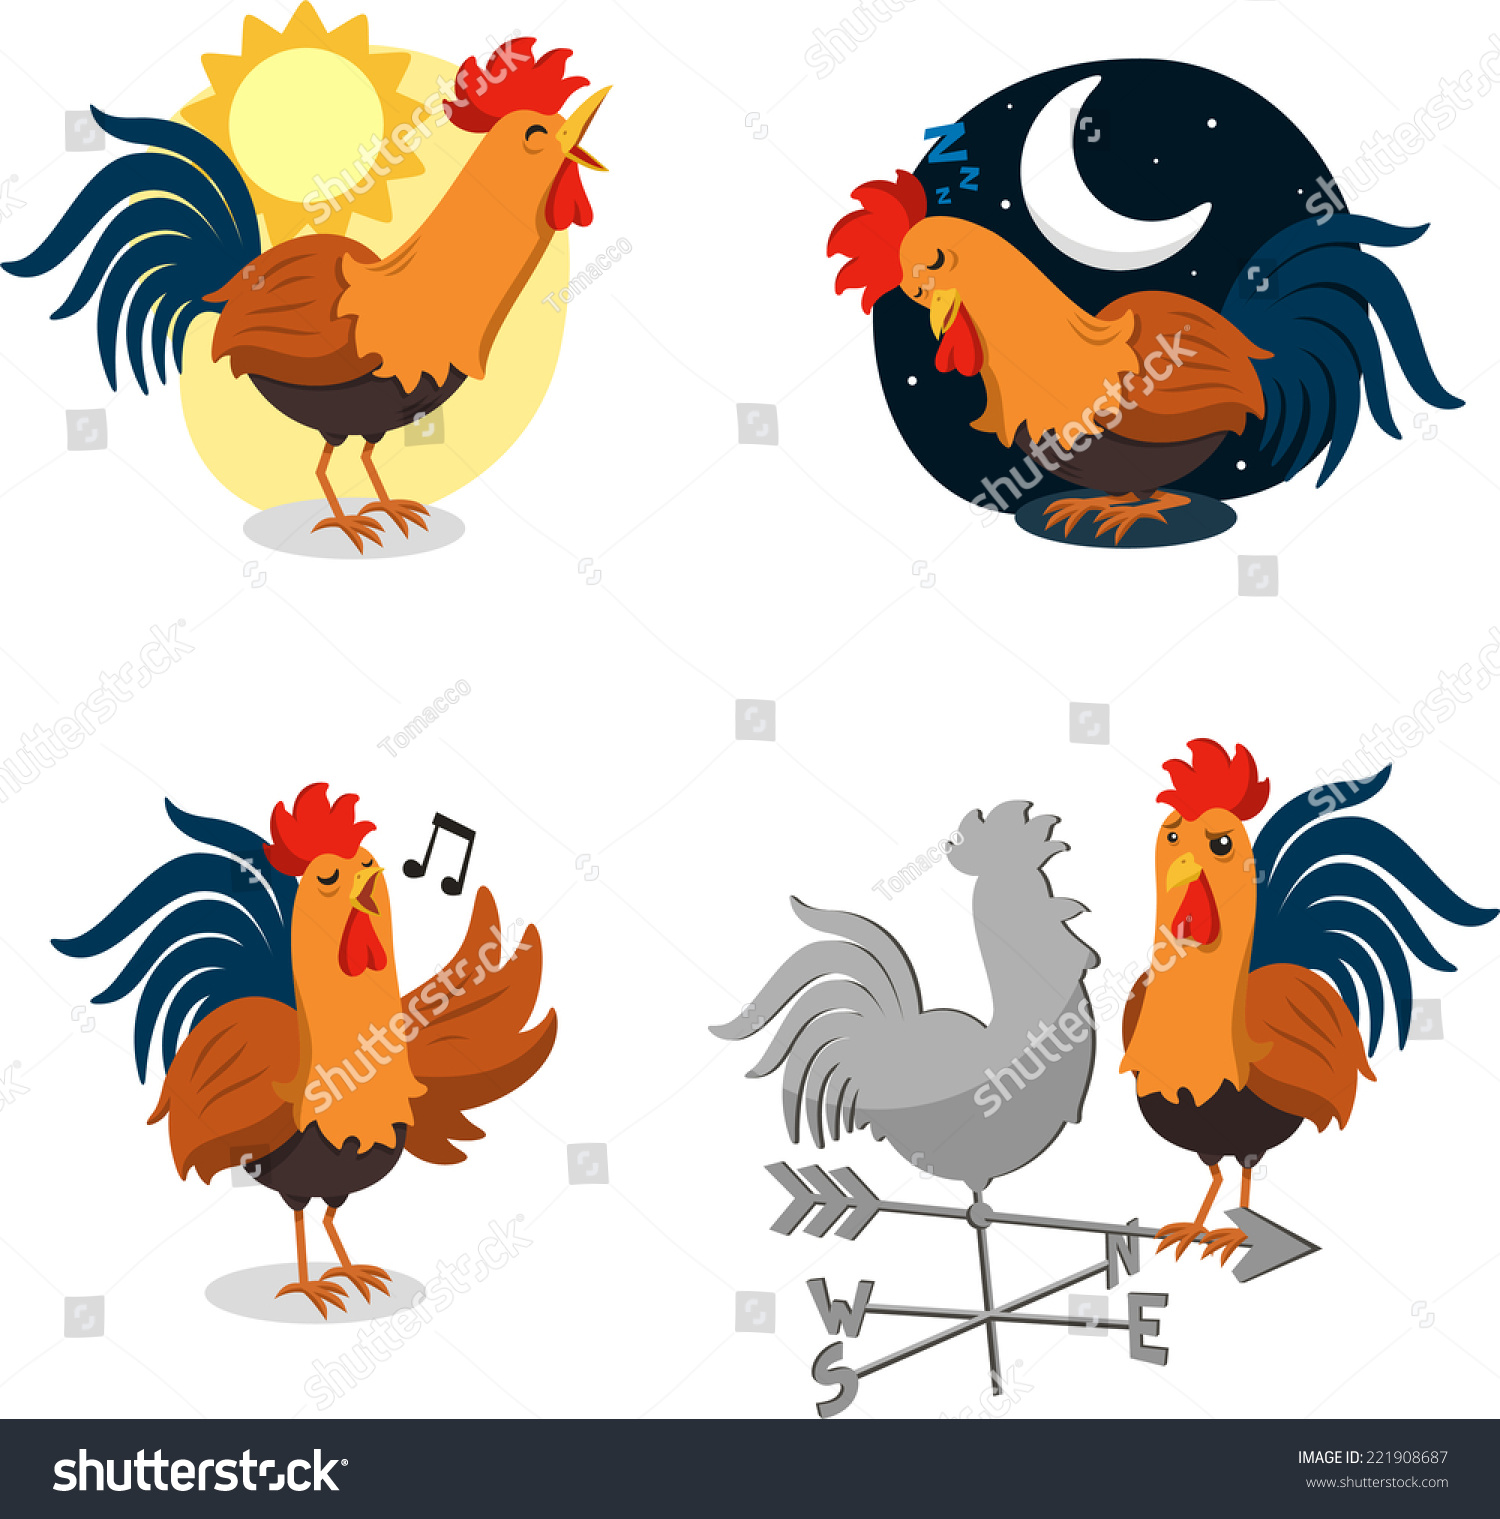 rooster cartoon illustrations set recognizable situations stock